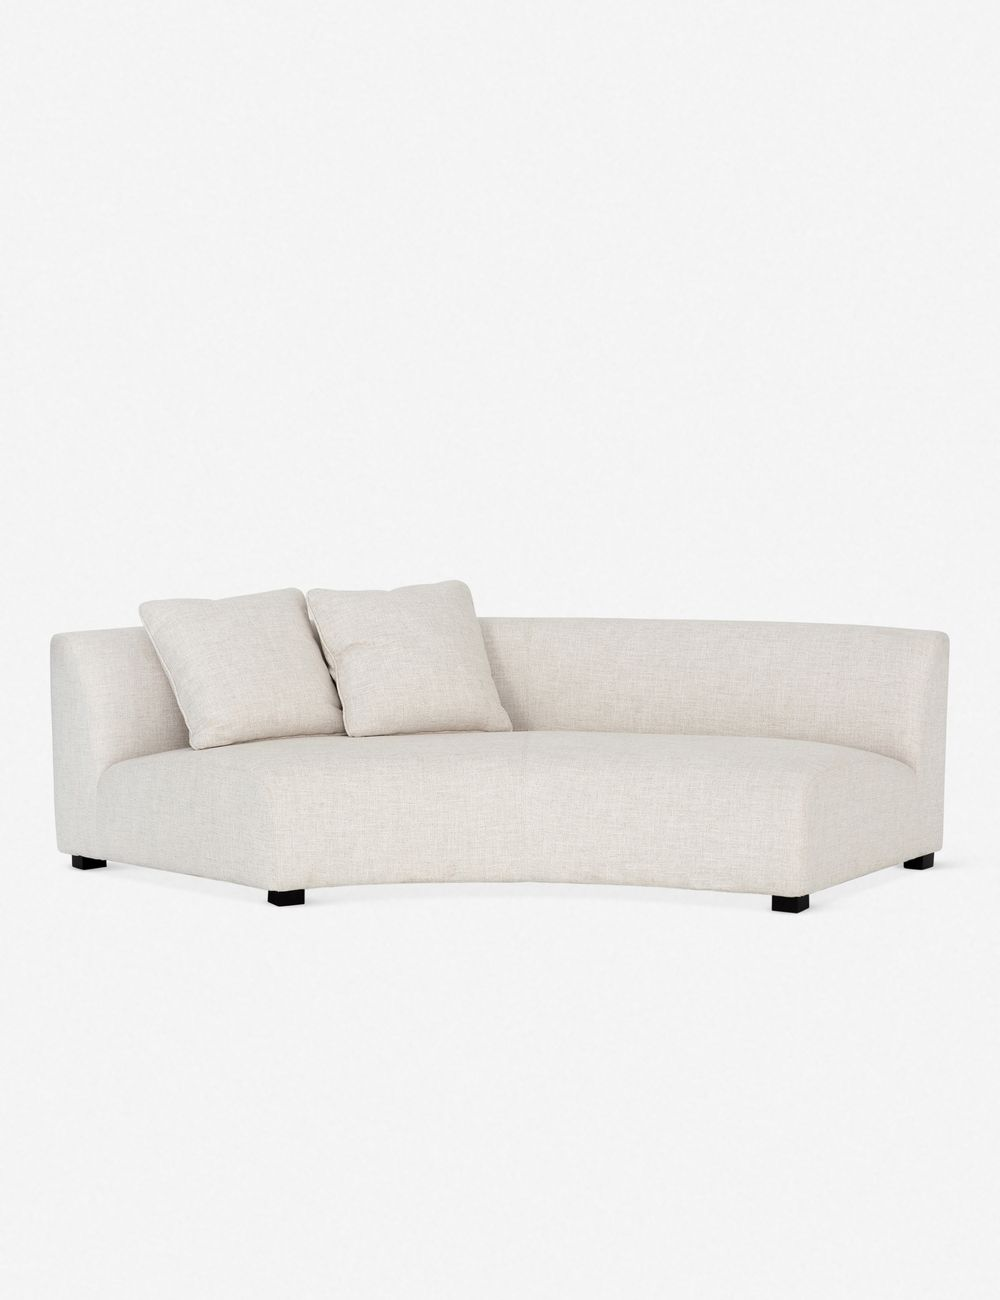 SABAN CURVED LEFT SOFA